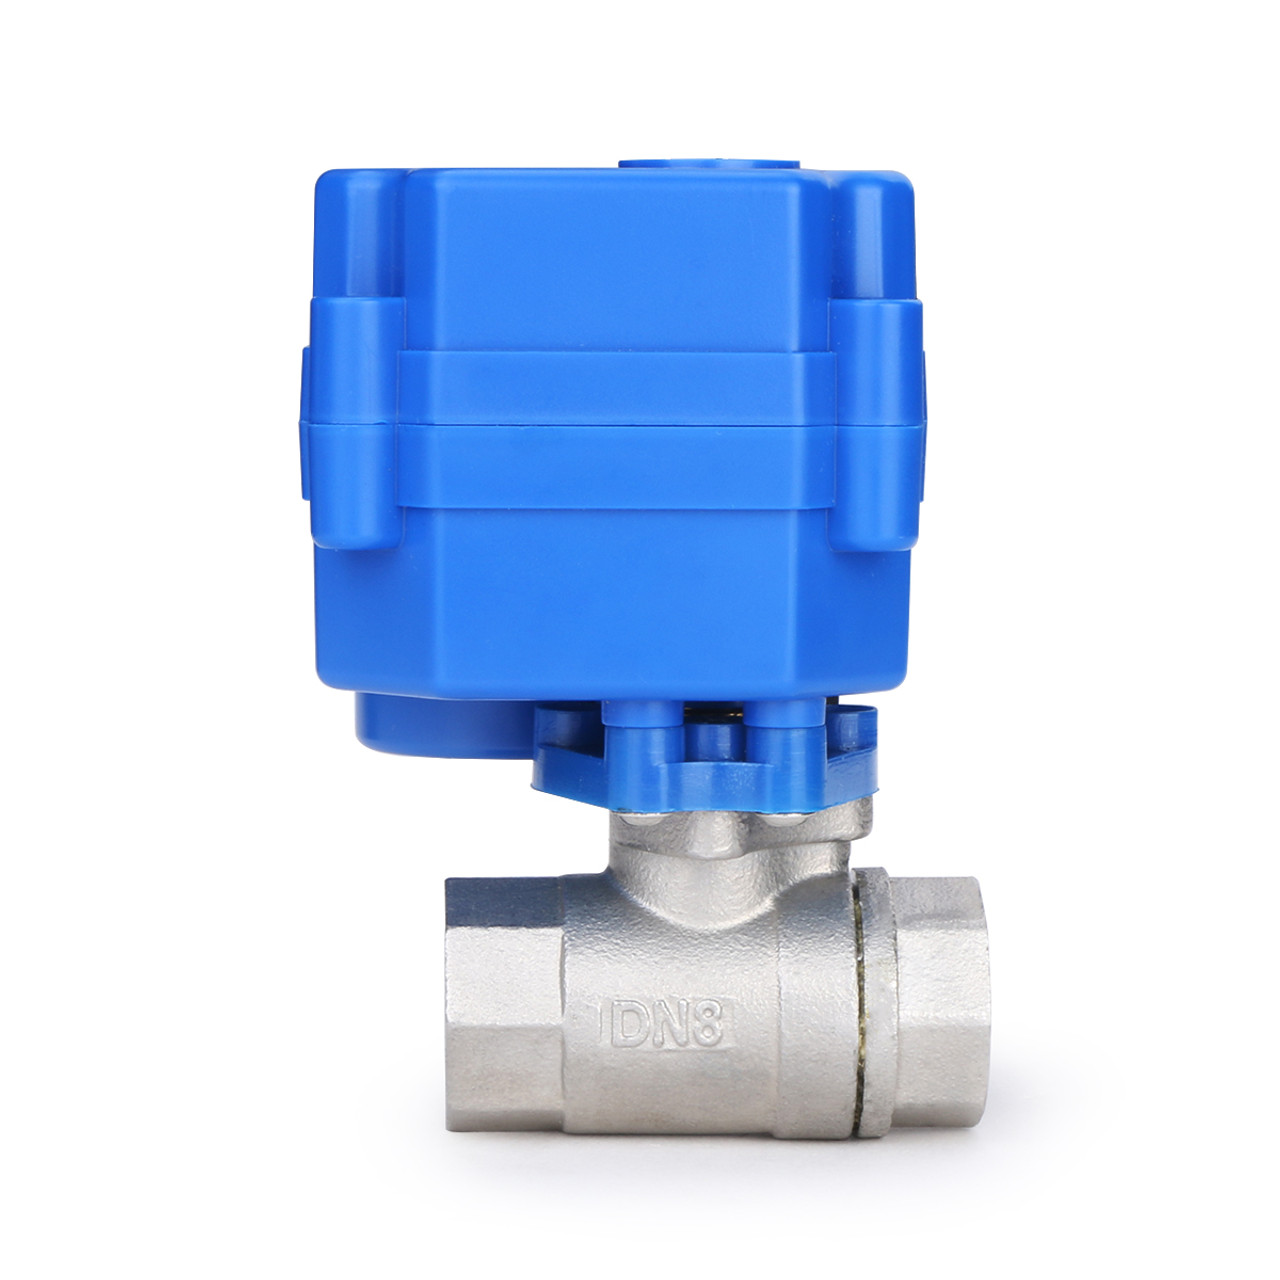 """U.S. Solid Motorized Ball Valve- 1/4"""" Stainless Steel Electrical Ball Valve with Full Port, 9-24 V DC, 2 Wire Reverse Polarity"""